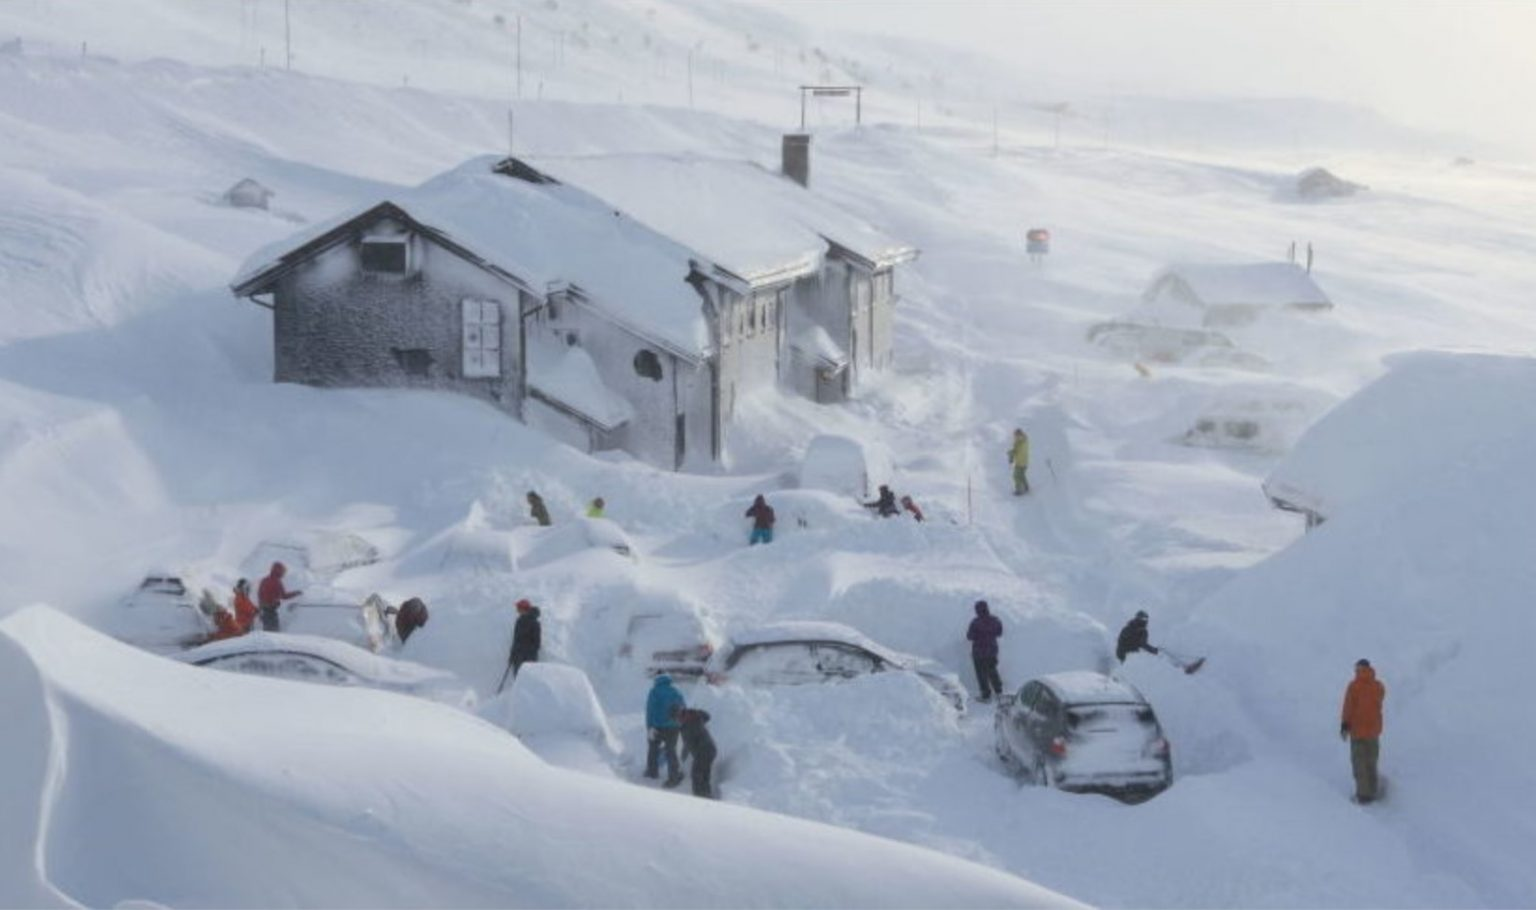 Snowmageddon Buries Turkey and Norway Under 10-20 Feet of Snow